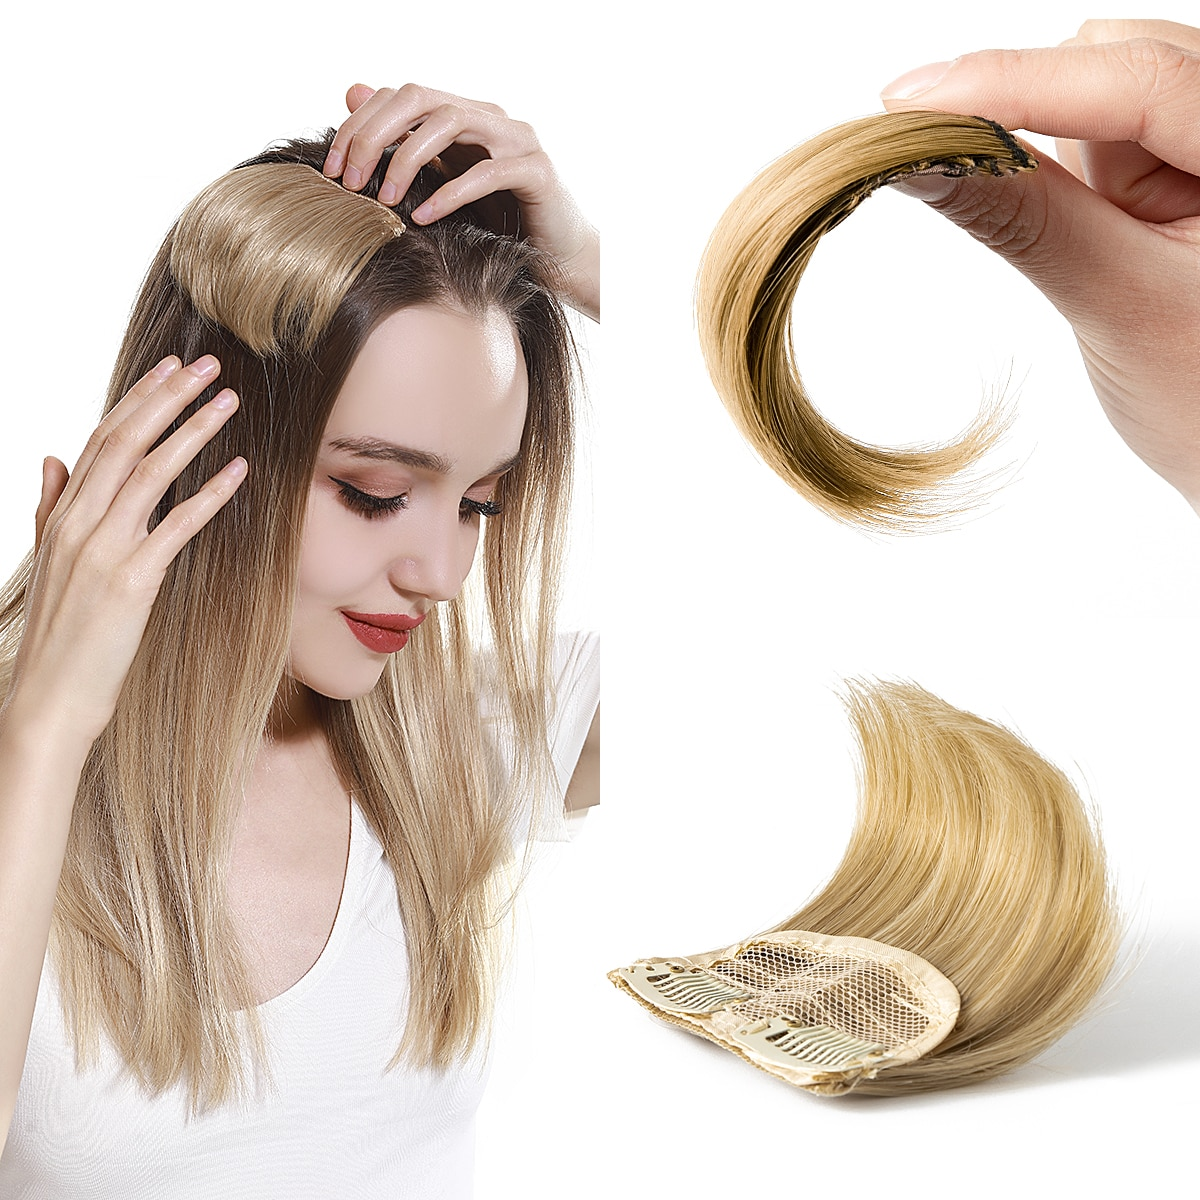 Straight Hair Pads Fashion Hair Volume Increase Synthetic Fluffy Invisible Natural Clip on Hairpieces Blonde For women 2 Pieces